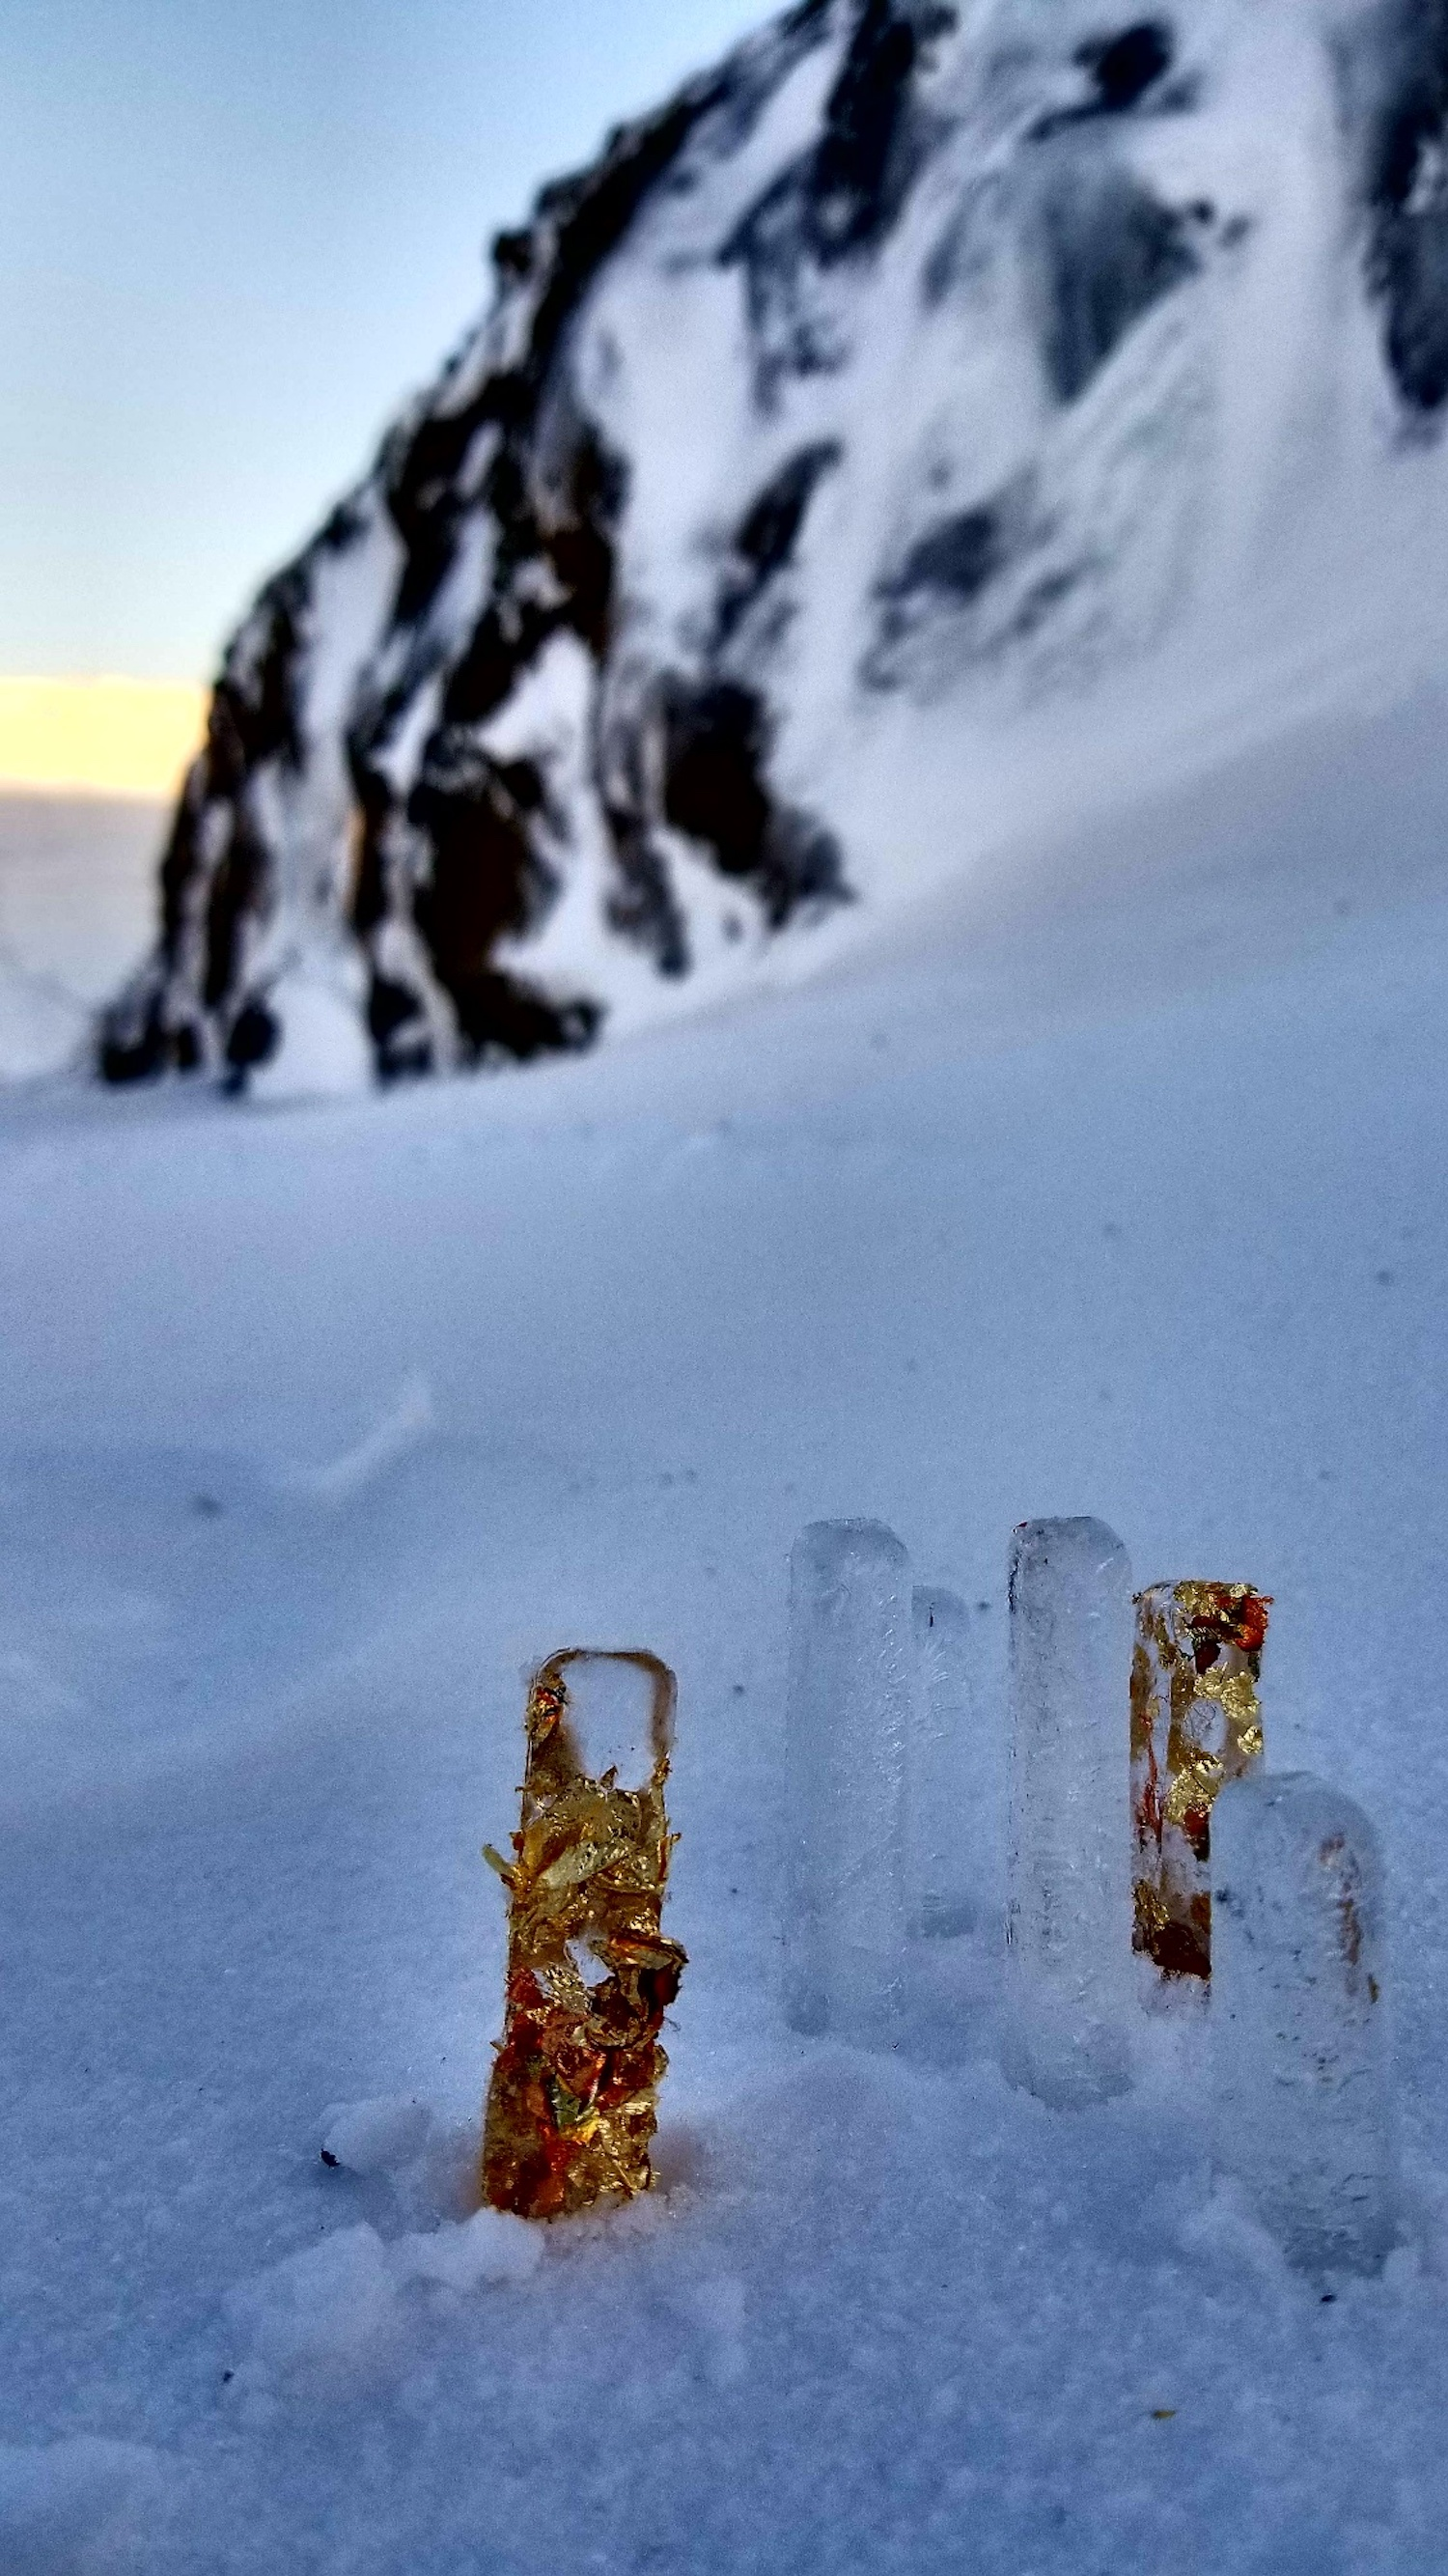 Gold leaf embedded in ice, installed in a snow drift in Suðureyri, Westfjords, Dec 2017